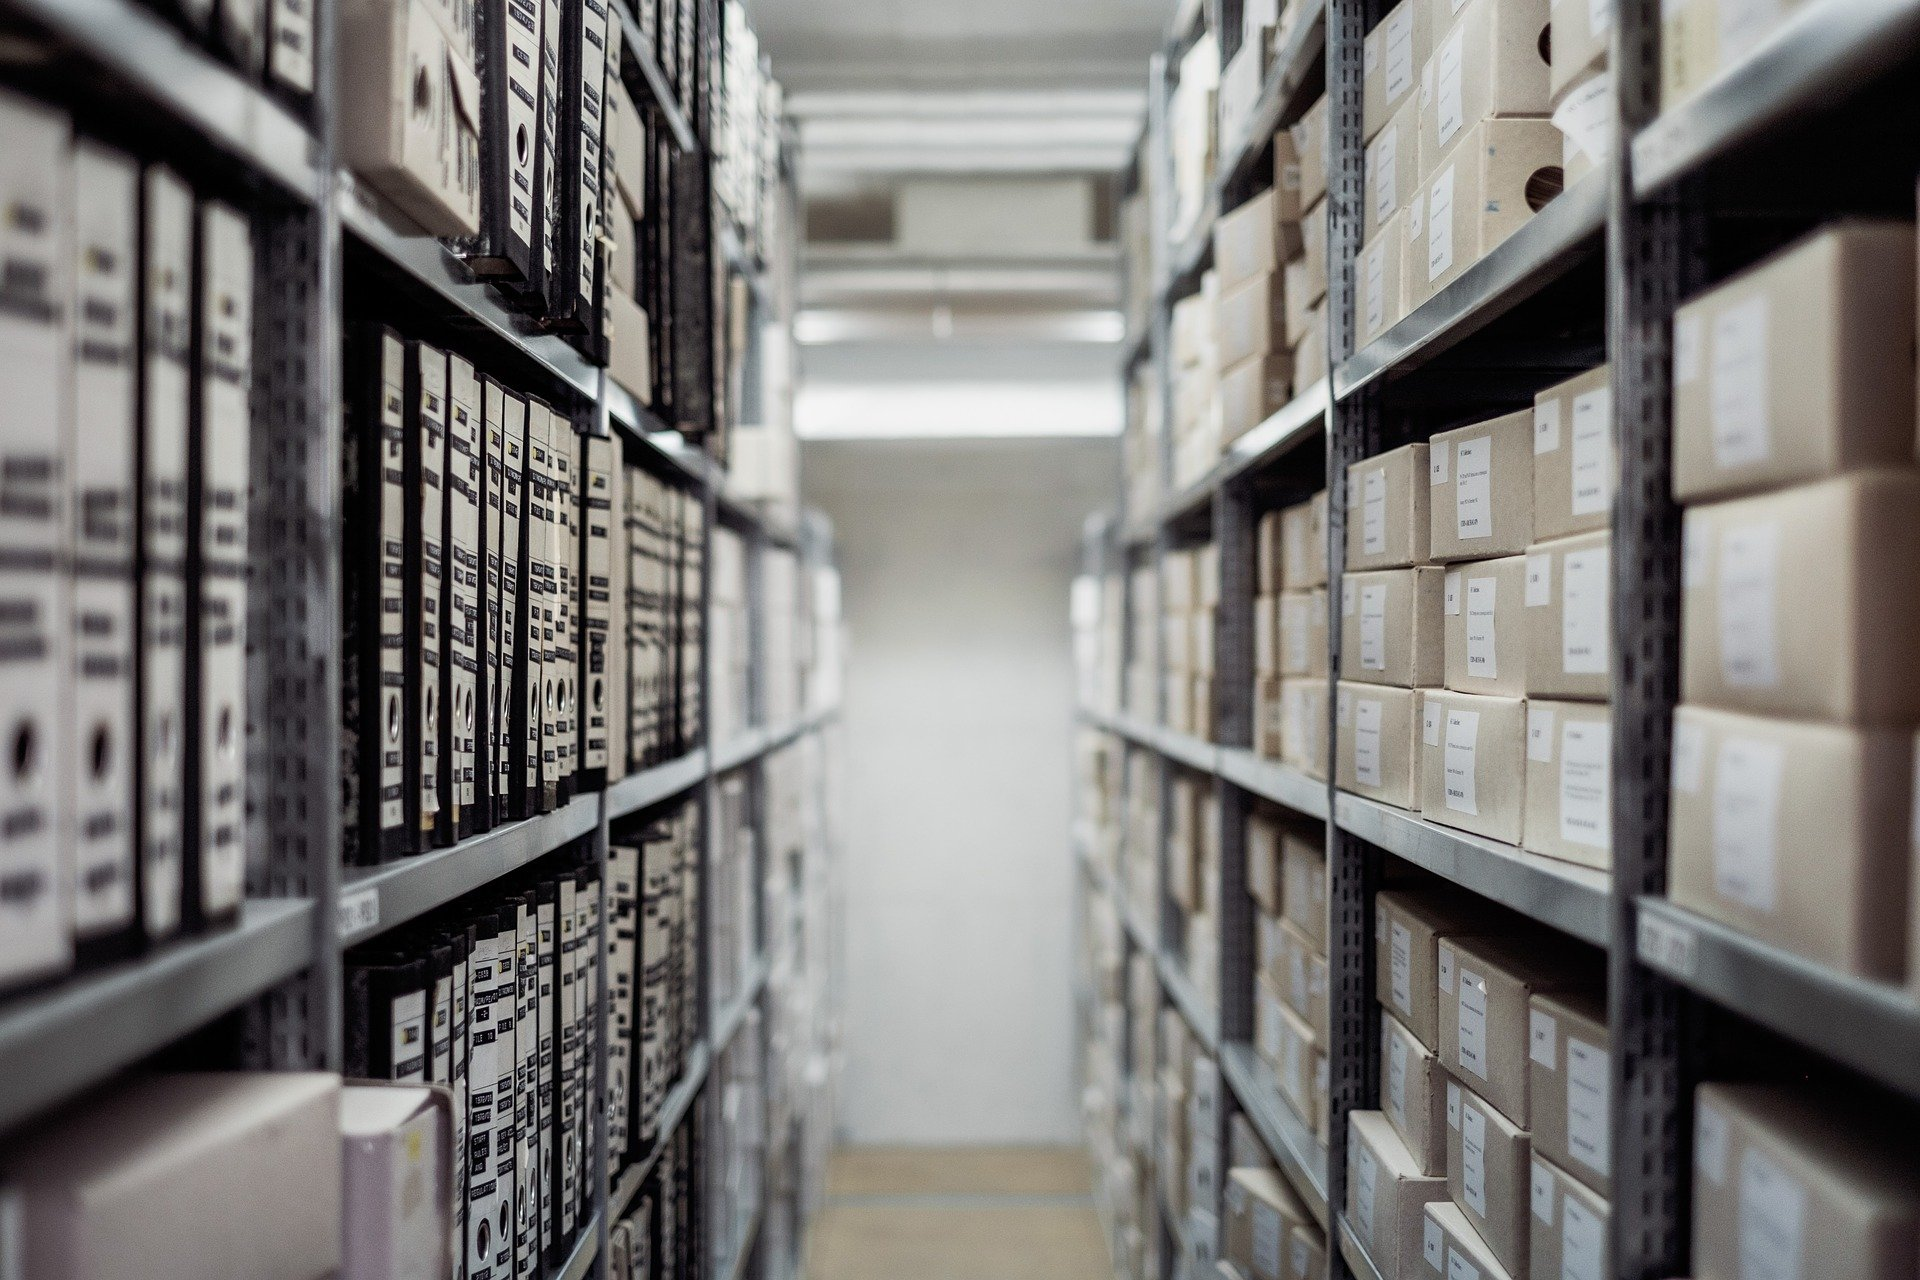 Boxes of documents in a storage.